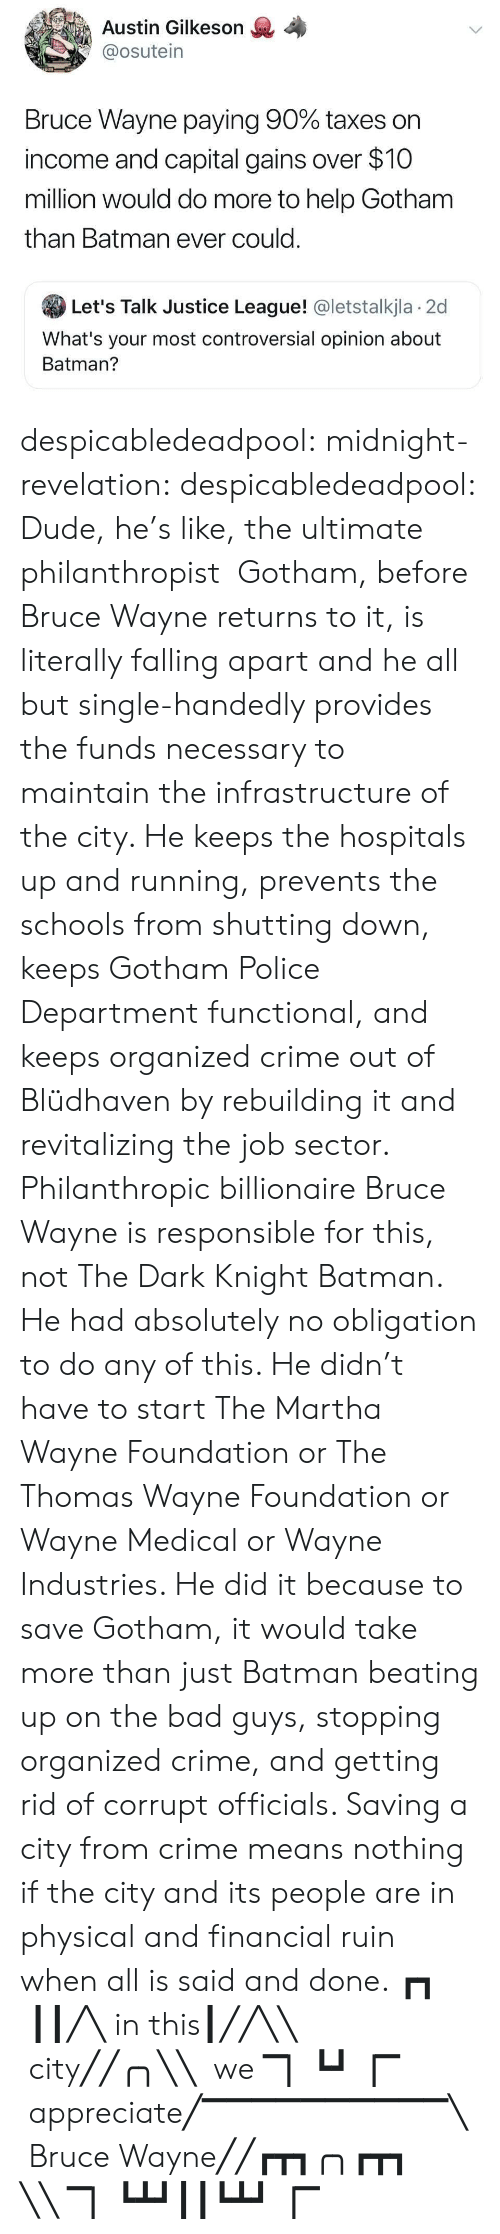 Financial: Austin Gilkeson  @osutein  Bruce Wayne paying 90% taxes on  income and capital gains over $10  million would do more to help Gotham  than Batman ever could.  Let's Talk Justice League! @letstalkjla 2d  What's your most controversial opinion about  Batman? despicabledeadpool:  midnight-revelation: despicabledeadpool:  Dude, he's like, the ultimate philanthropist   Gotham, before Bruce Wayne returns to it, is literally falling apart and he all but single-handedly provides the funds necessary to maintain the infrastructure of the city. He keeps the hospitals up and running, prevents the schools from shutting down, keeps Gotham Police Department functional, and keeps organized crime out of Blüdhaven by rebuilding it and revitalizing the job sector. Philanthropic billionaire Bruce Wayne is responsible for this, not The Dark Knight Batman. He had absolutely no obligation to do any of this. He didn't have to start The Martha Wayne Foundation or The Thomas Wayne Foundation or Wayne Medical or Wayne Industries. He did it because to save Gotham, it would take more than just Batman beating up on the bad guys, stopping organized crime, and getting rid of corrupt officials. Saving a city from crime means nothing if the city and its people are in physical and financial ruin when all is said and done.  ┏┓  ┃┃╱╲ in this┃╱╱╲╲  city╱╱╭╮╲╲  we ▔▏┗┛▕▔    appreciate╱▔▔▔▔▔▔▔▔▔▔╲  Bruce Wayne╱╱┏┳┓╭╮┏┳┓ ╲╲ ▔▏┗┻┛┃┃┗┻┛▕▔